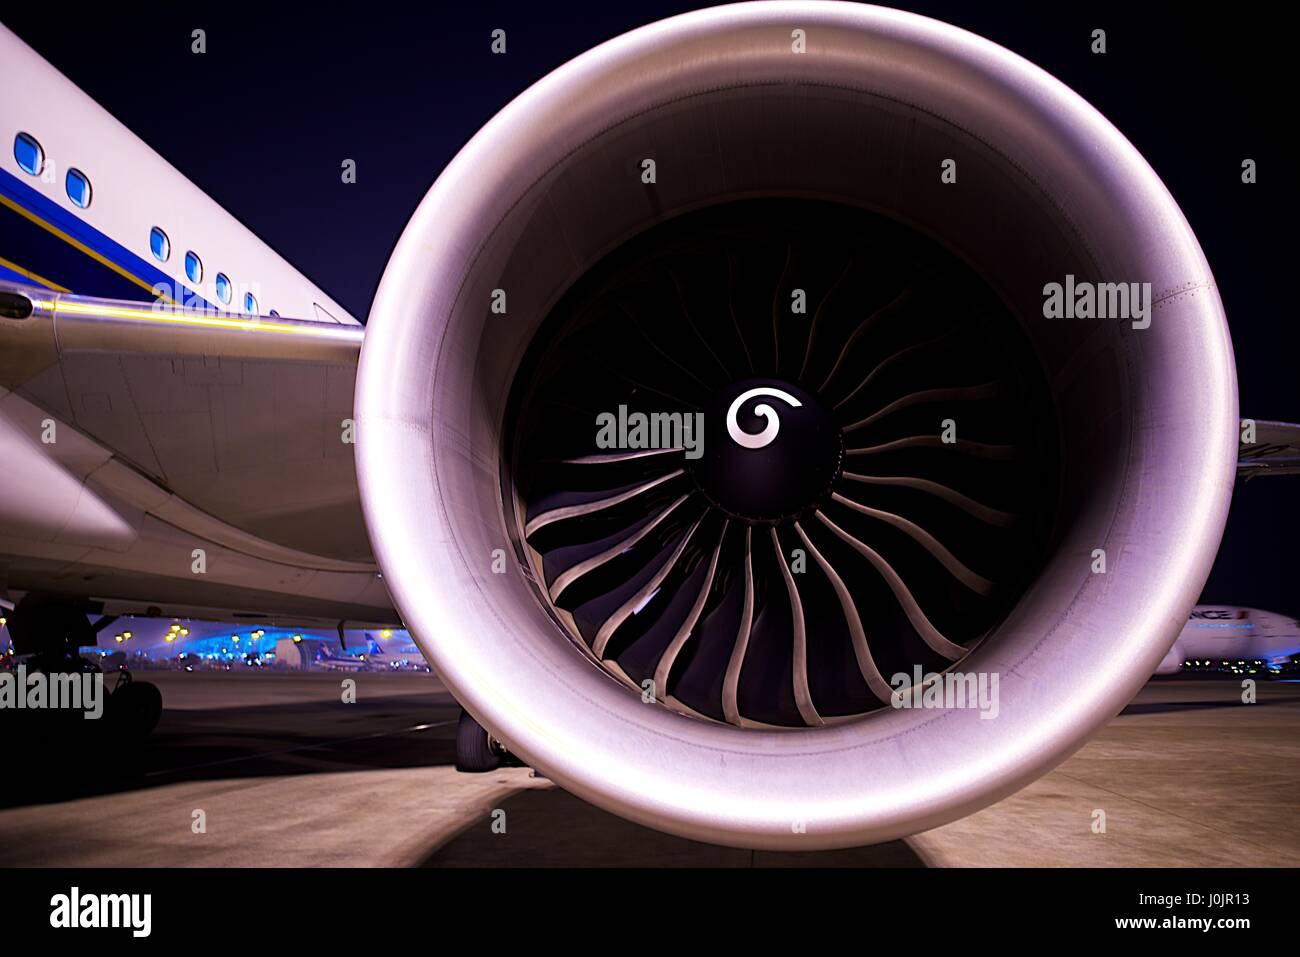 Direct view into a jet engine of a passenger plane preparing for take-off - Stock Image